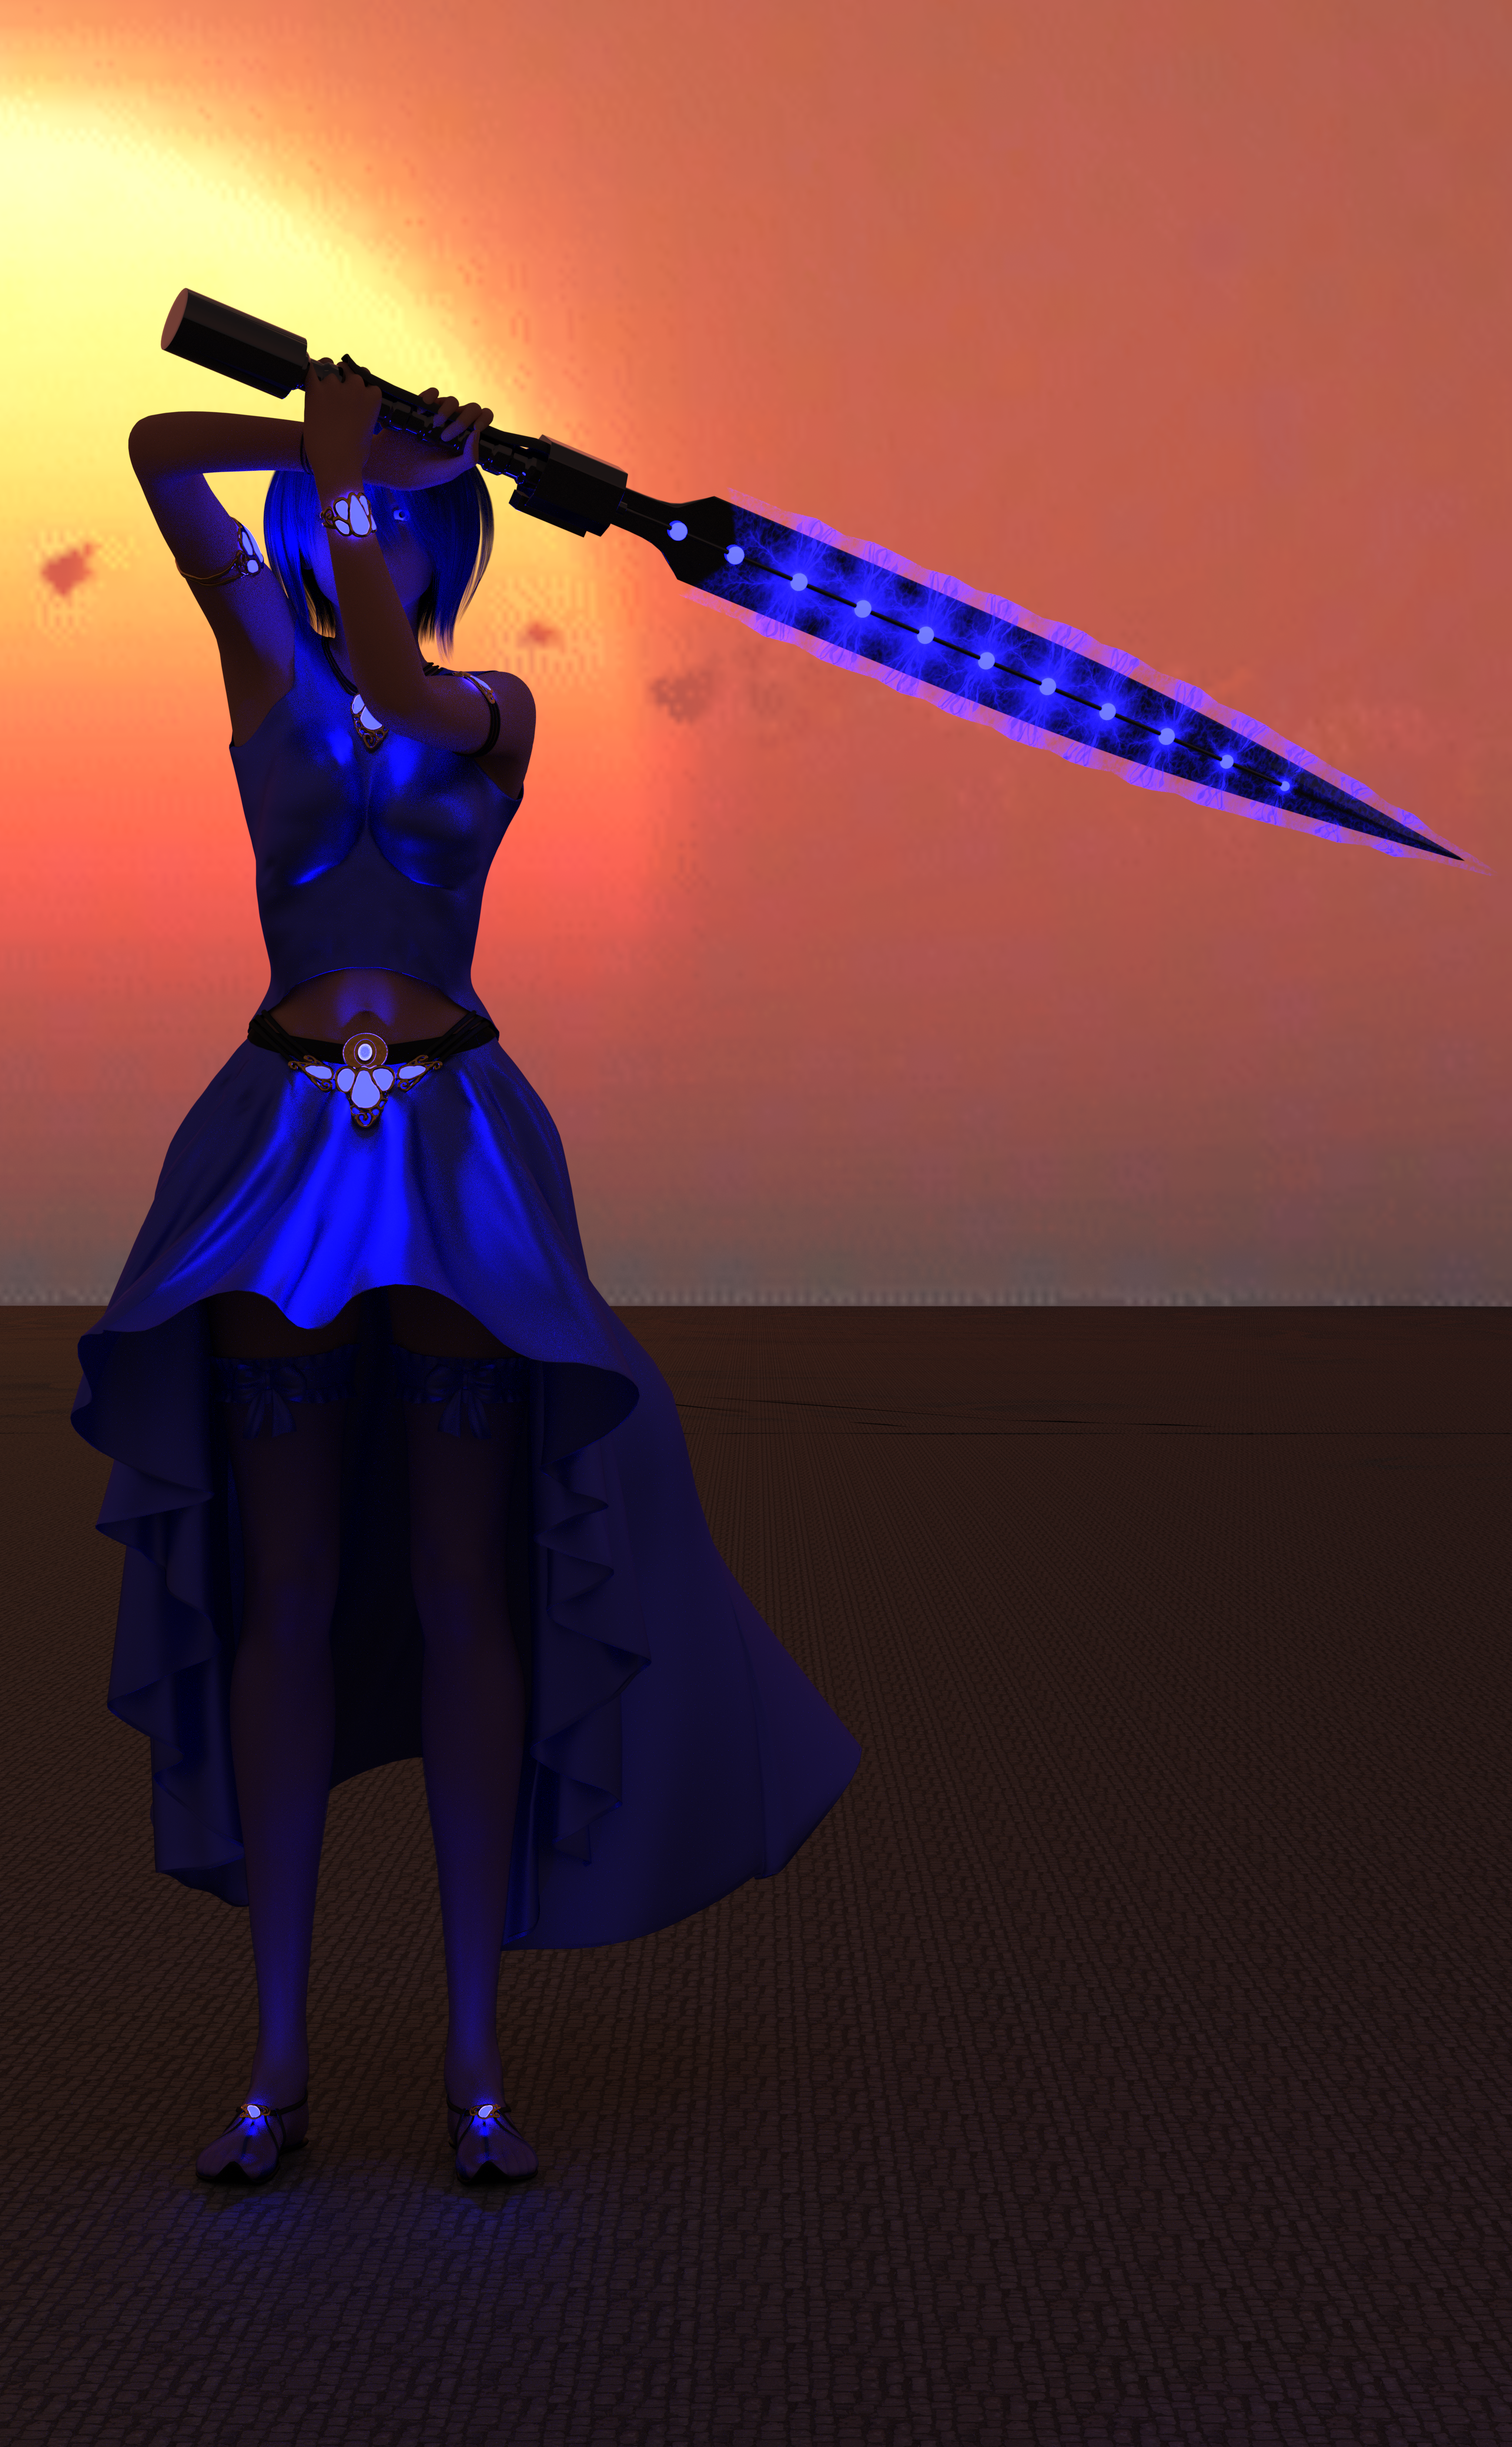 A woman with blue clothes, blue hair, a sword charged with blue magic, and glowing blue eyes!